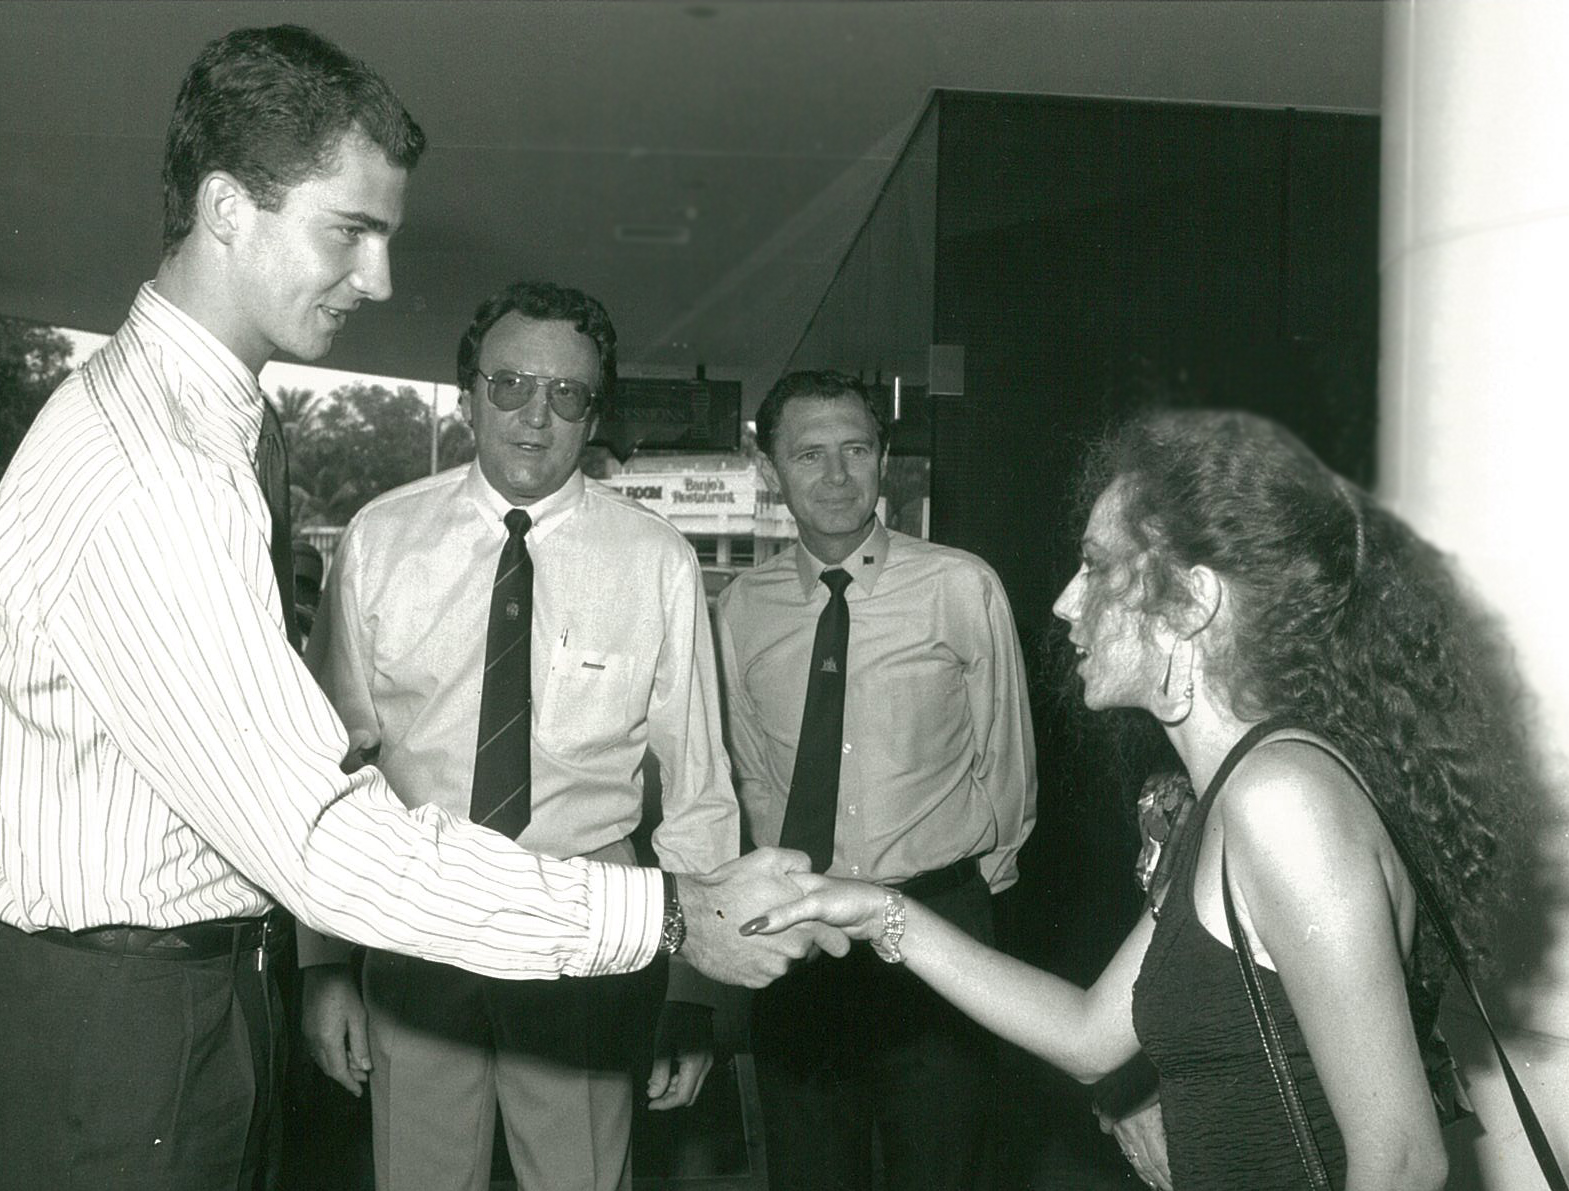 Meeting the King of Spain